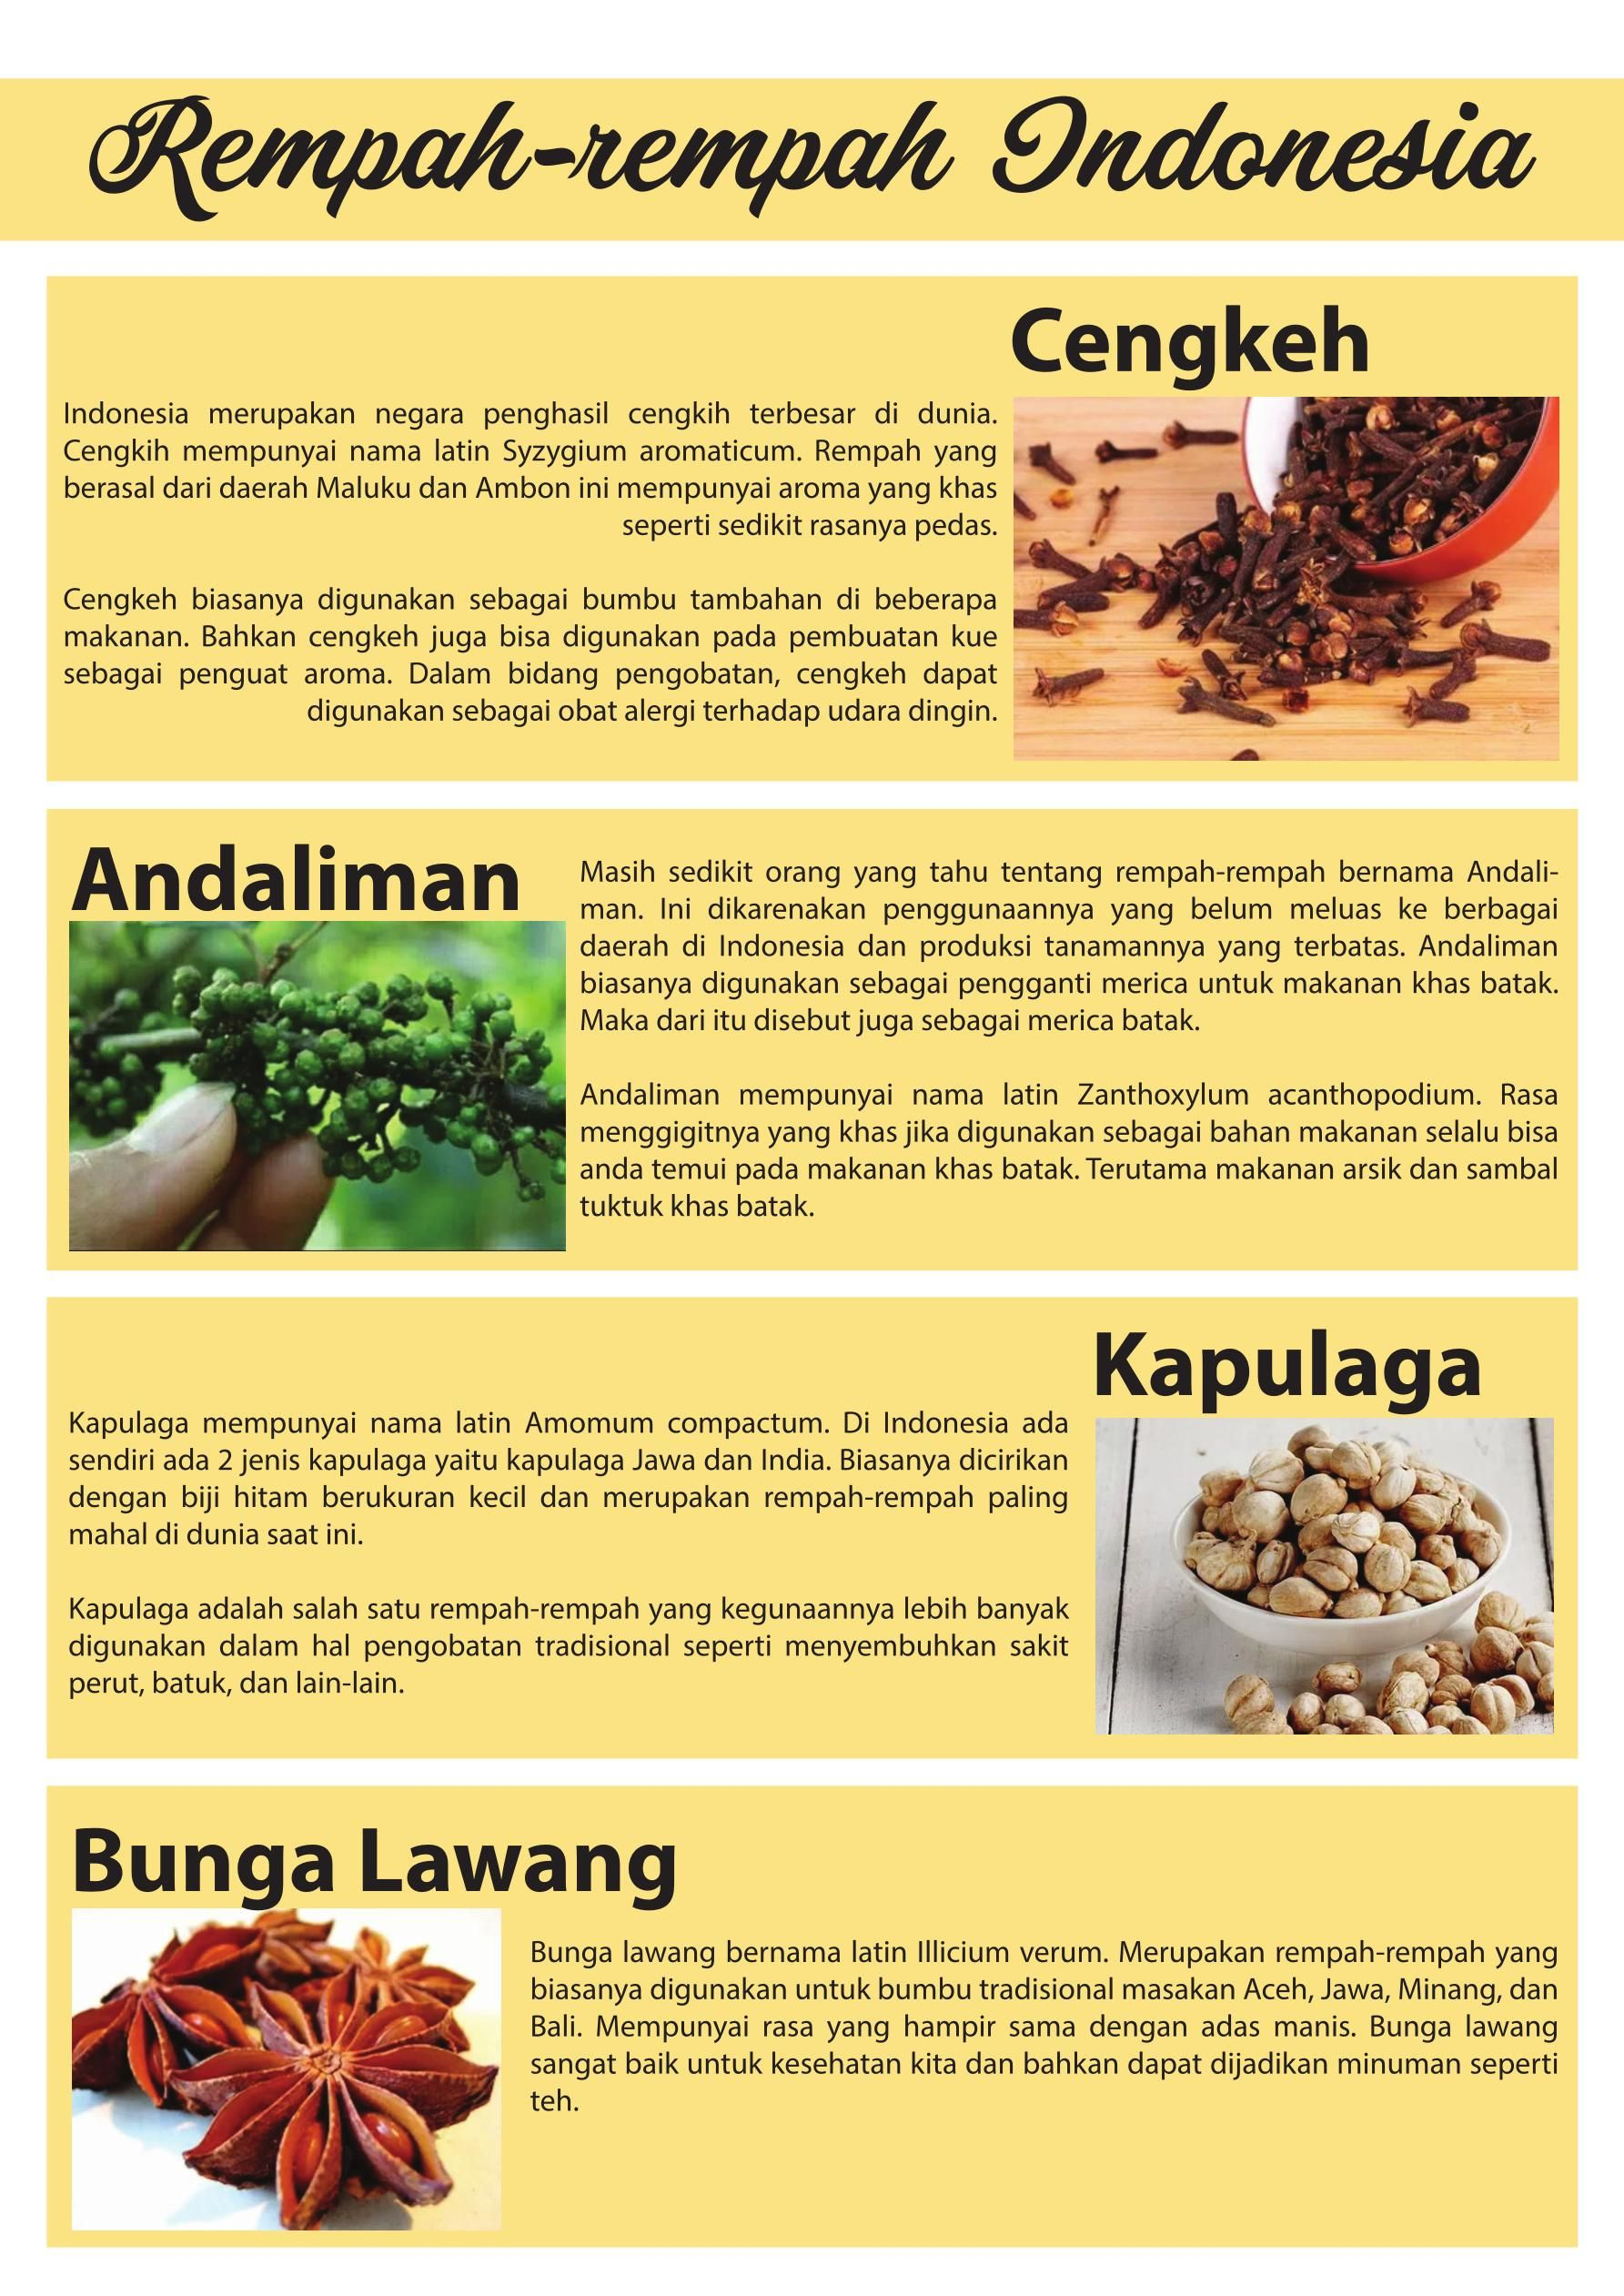 Pin by Majalah JualBeli on Ed Food&Beverage Bandung Vol 2 No 3 Pinterest